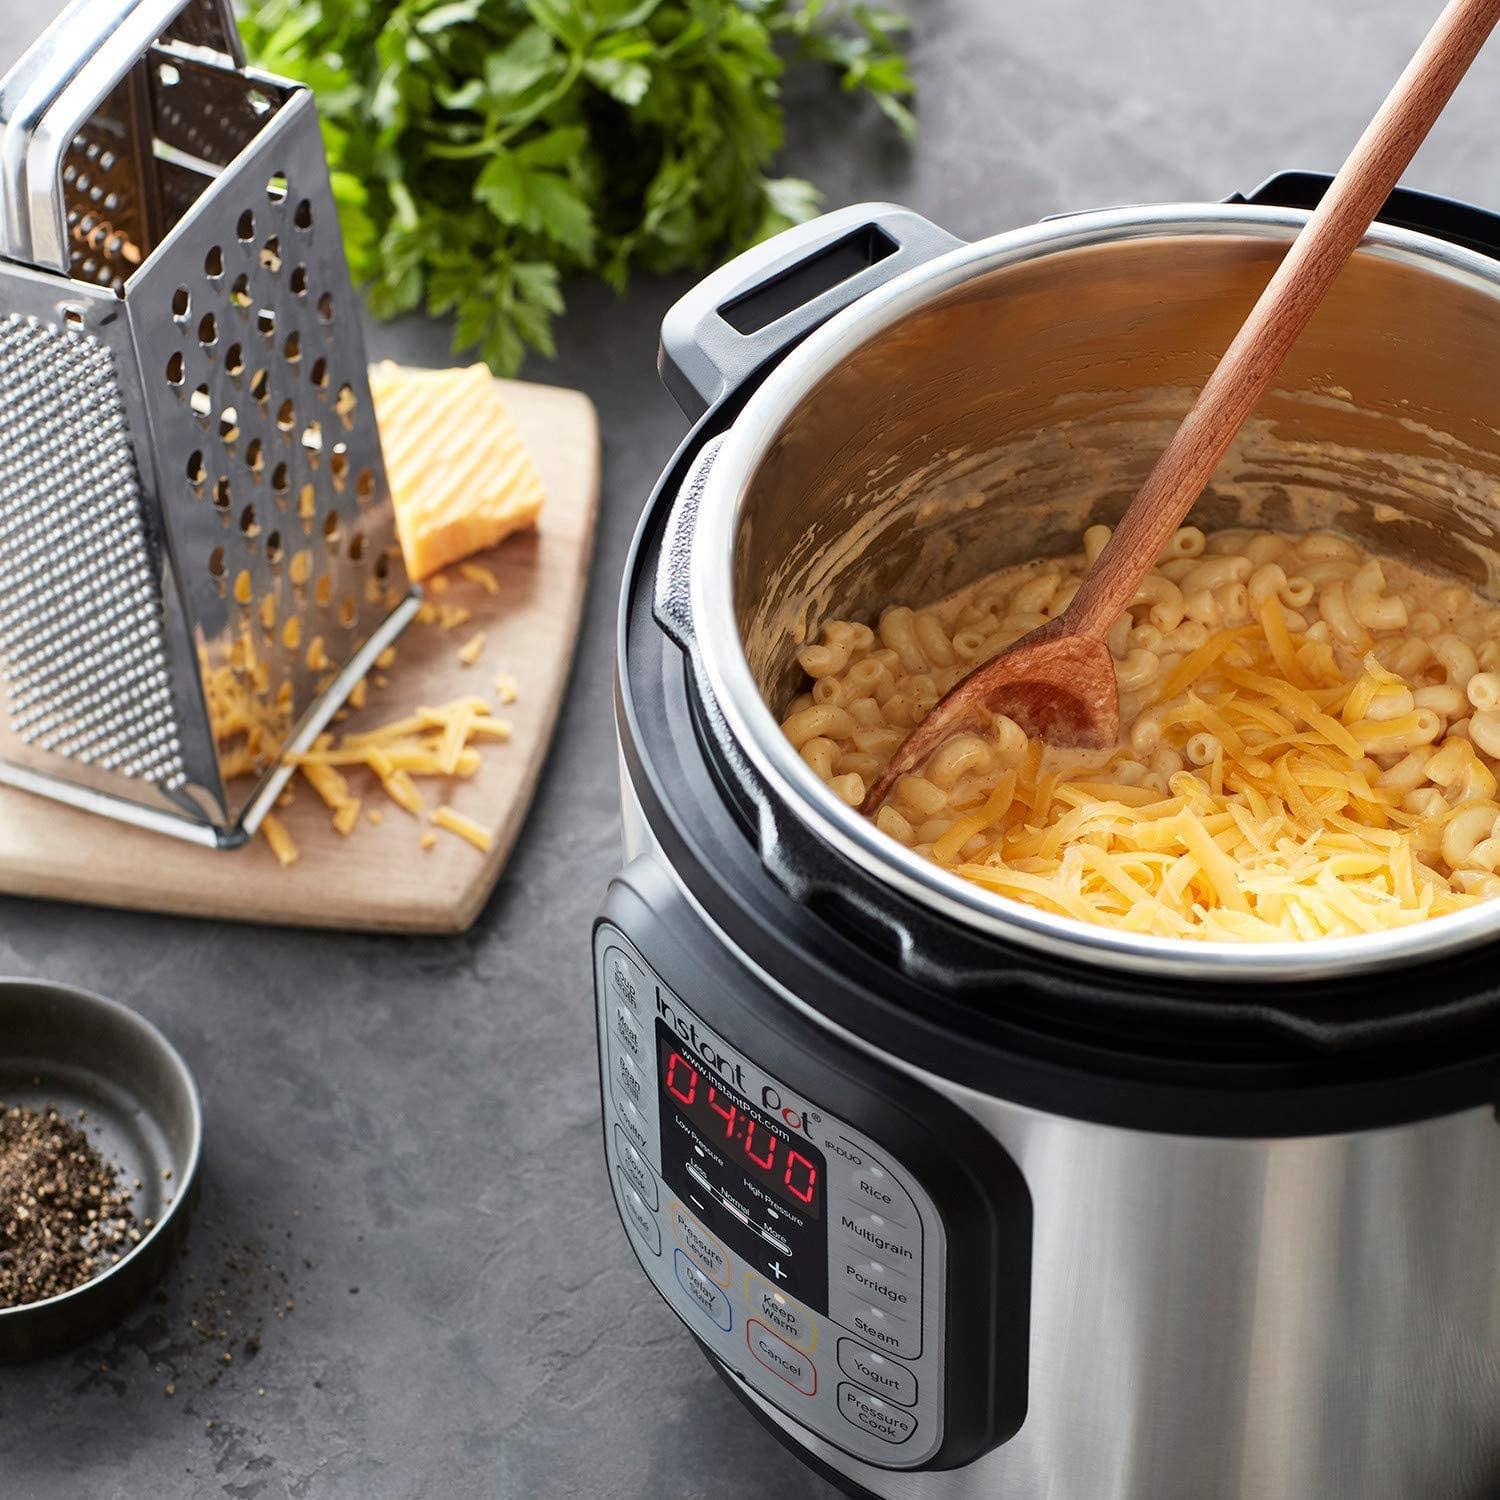 instant pot duo with food inside, cheese grater on the side